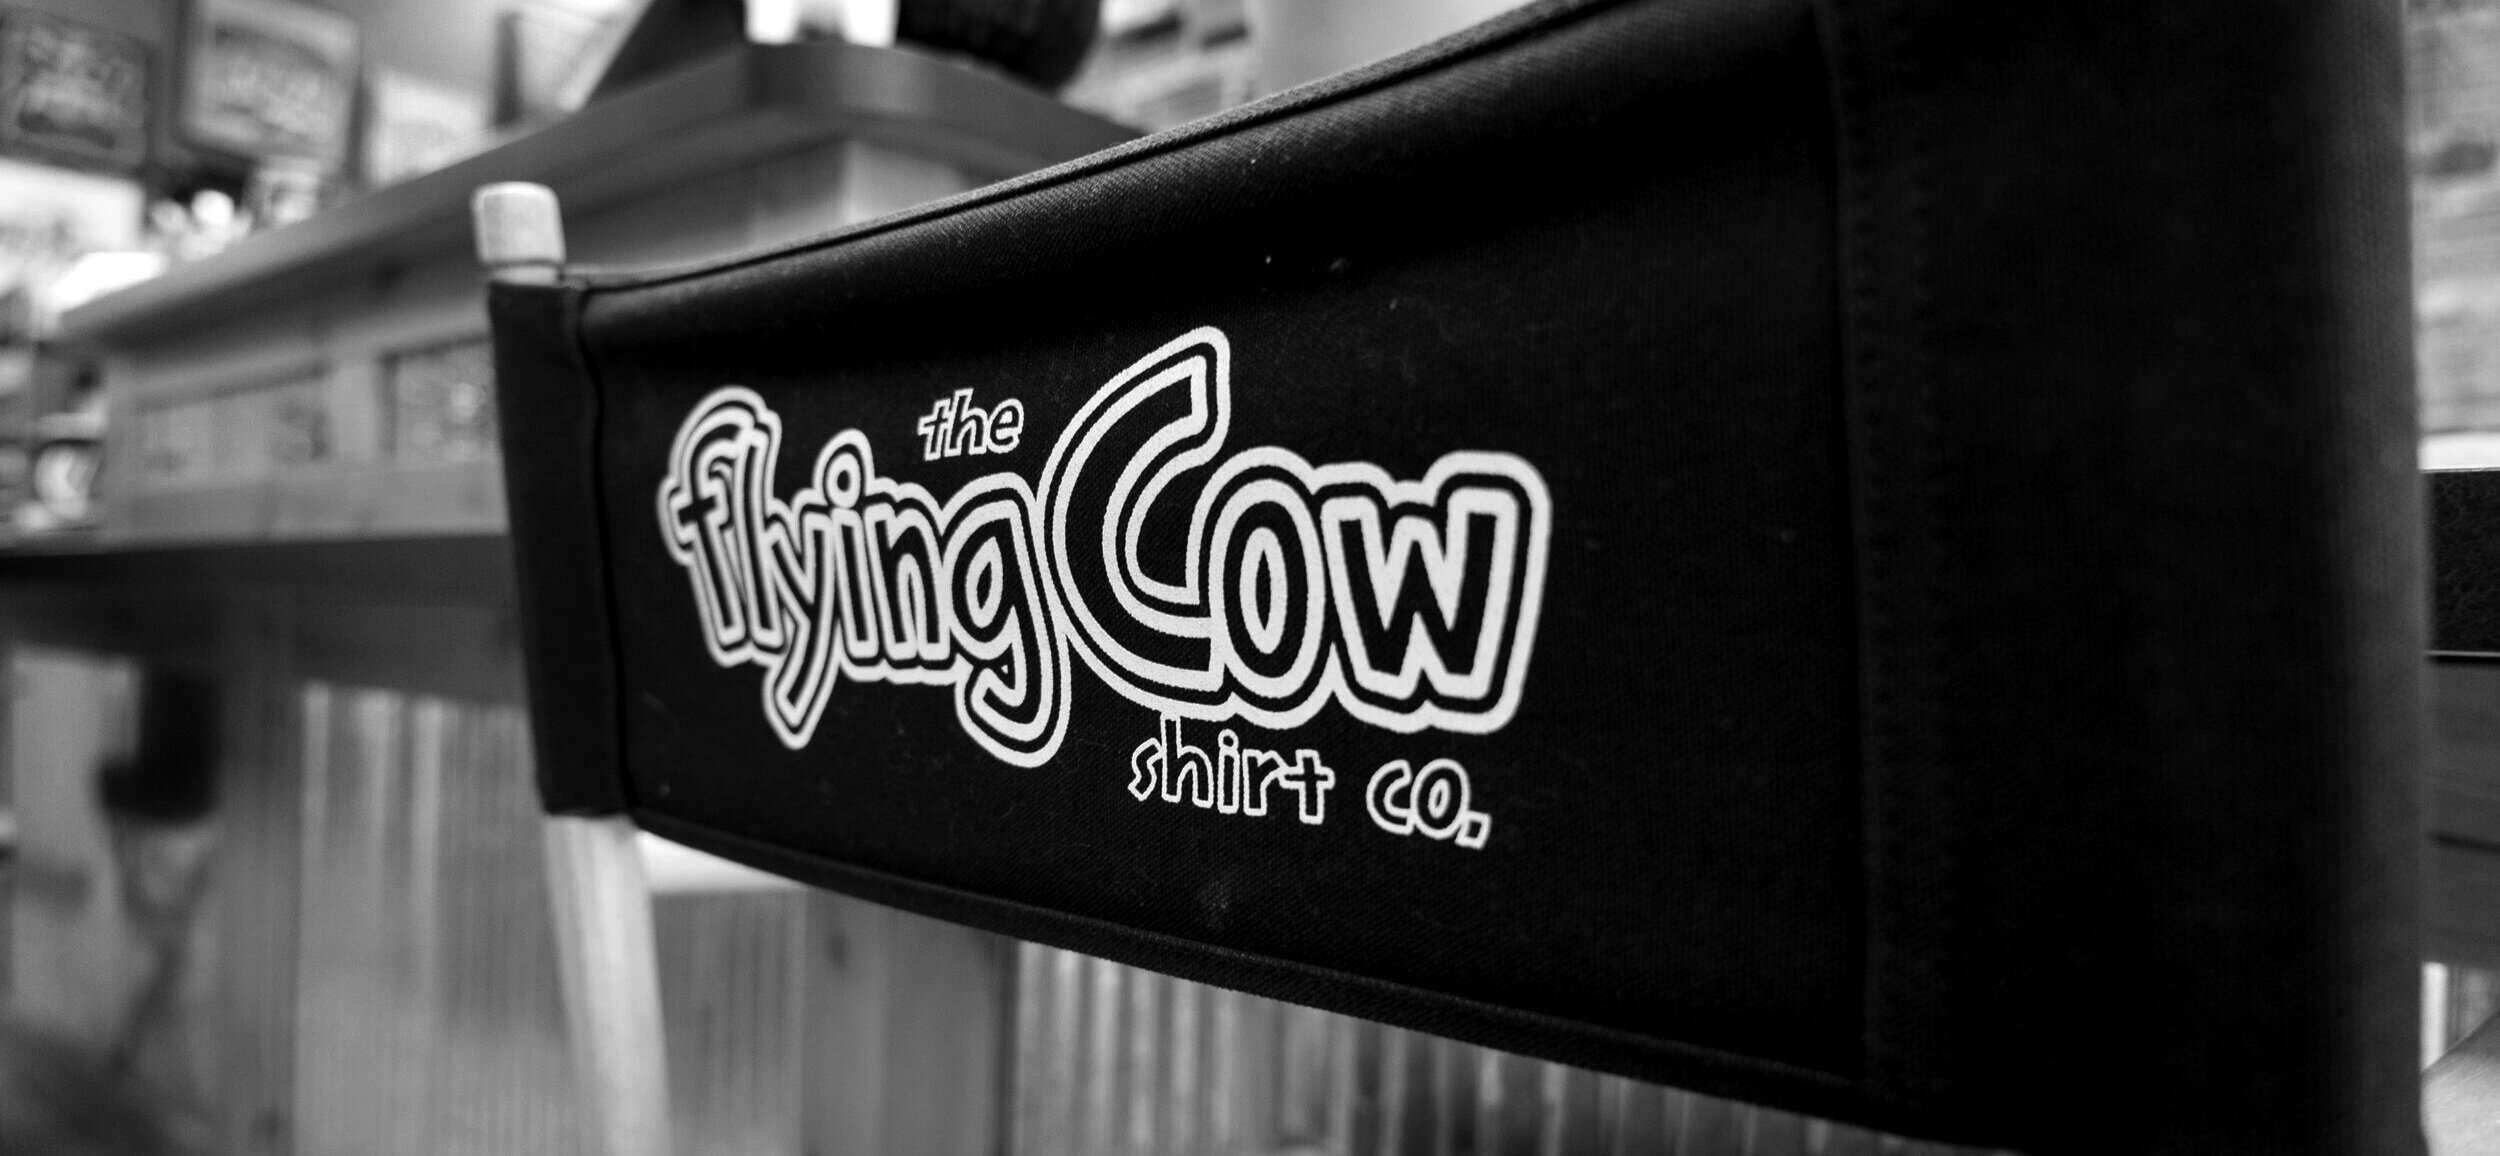 Flying Cow Store